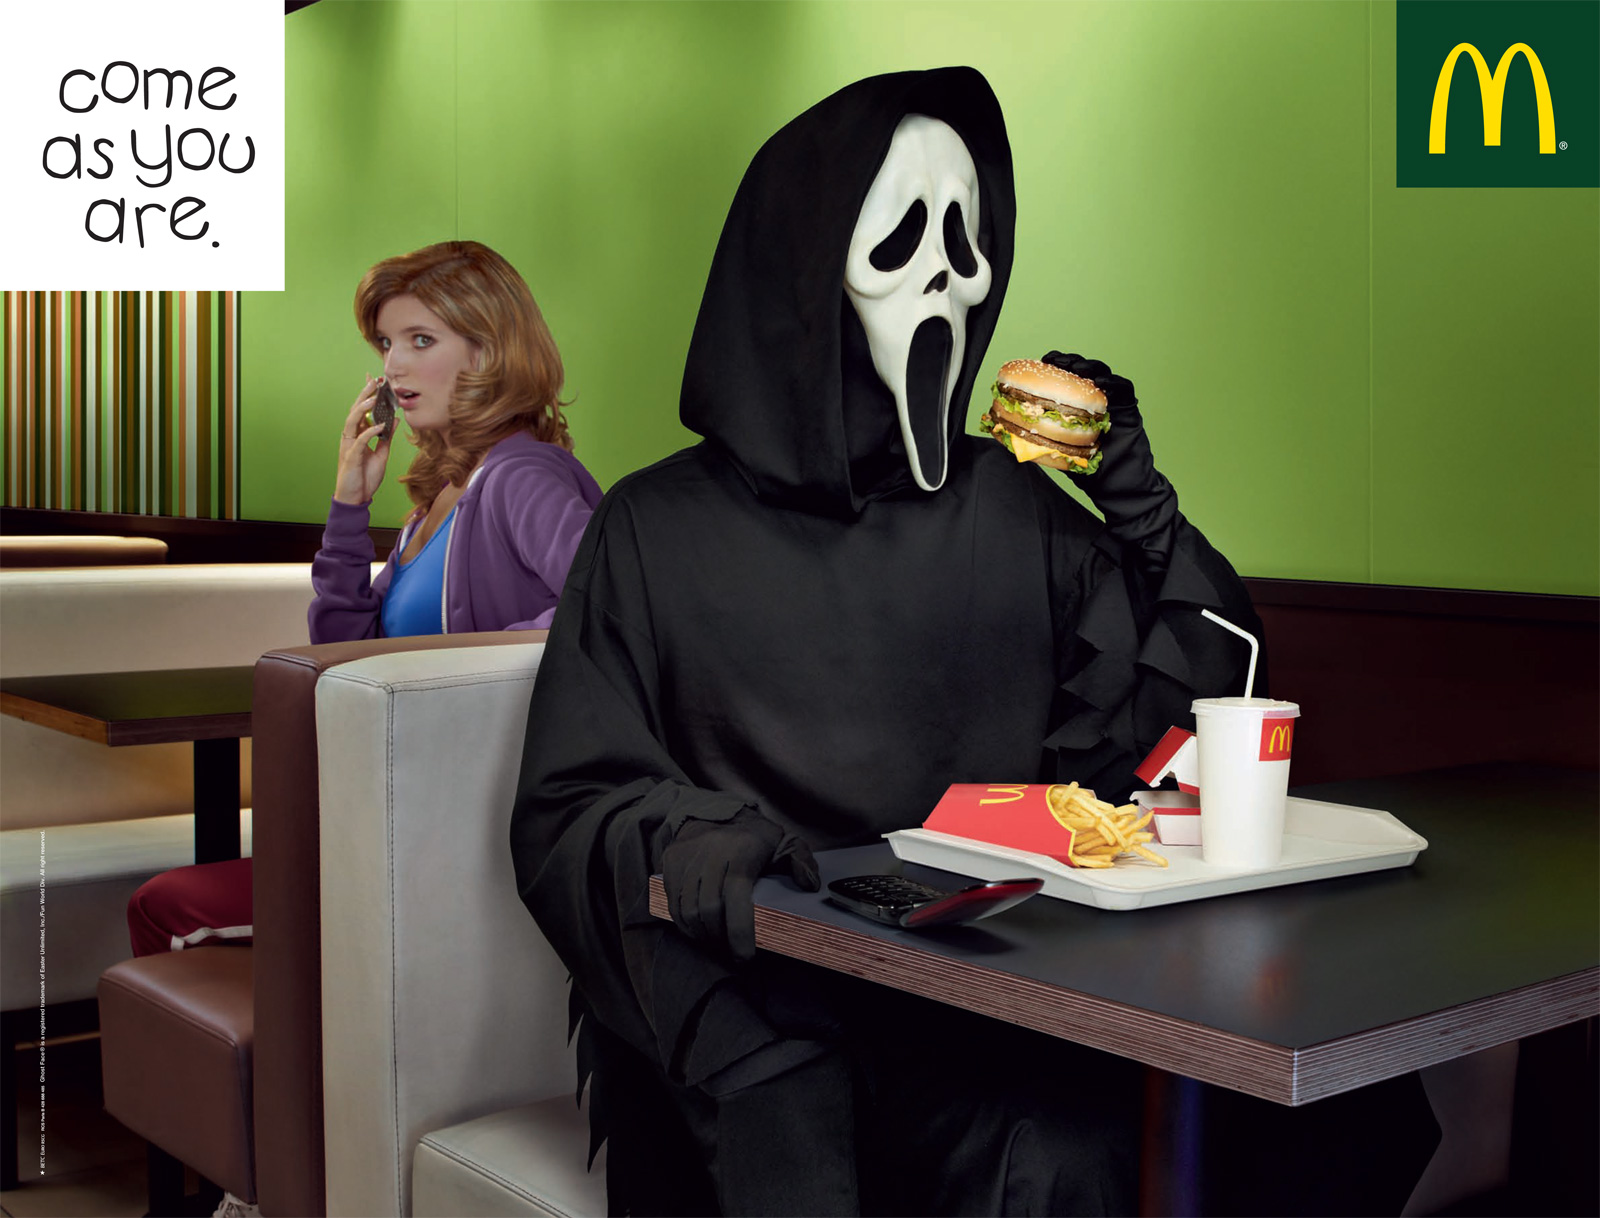 Halloween Creative Ads.Halloween Advertising 27 Creative Tv Commercials And Print